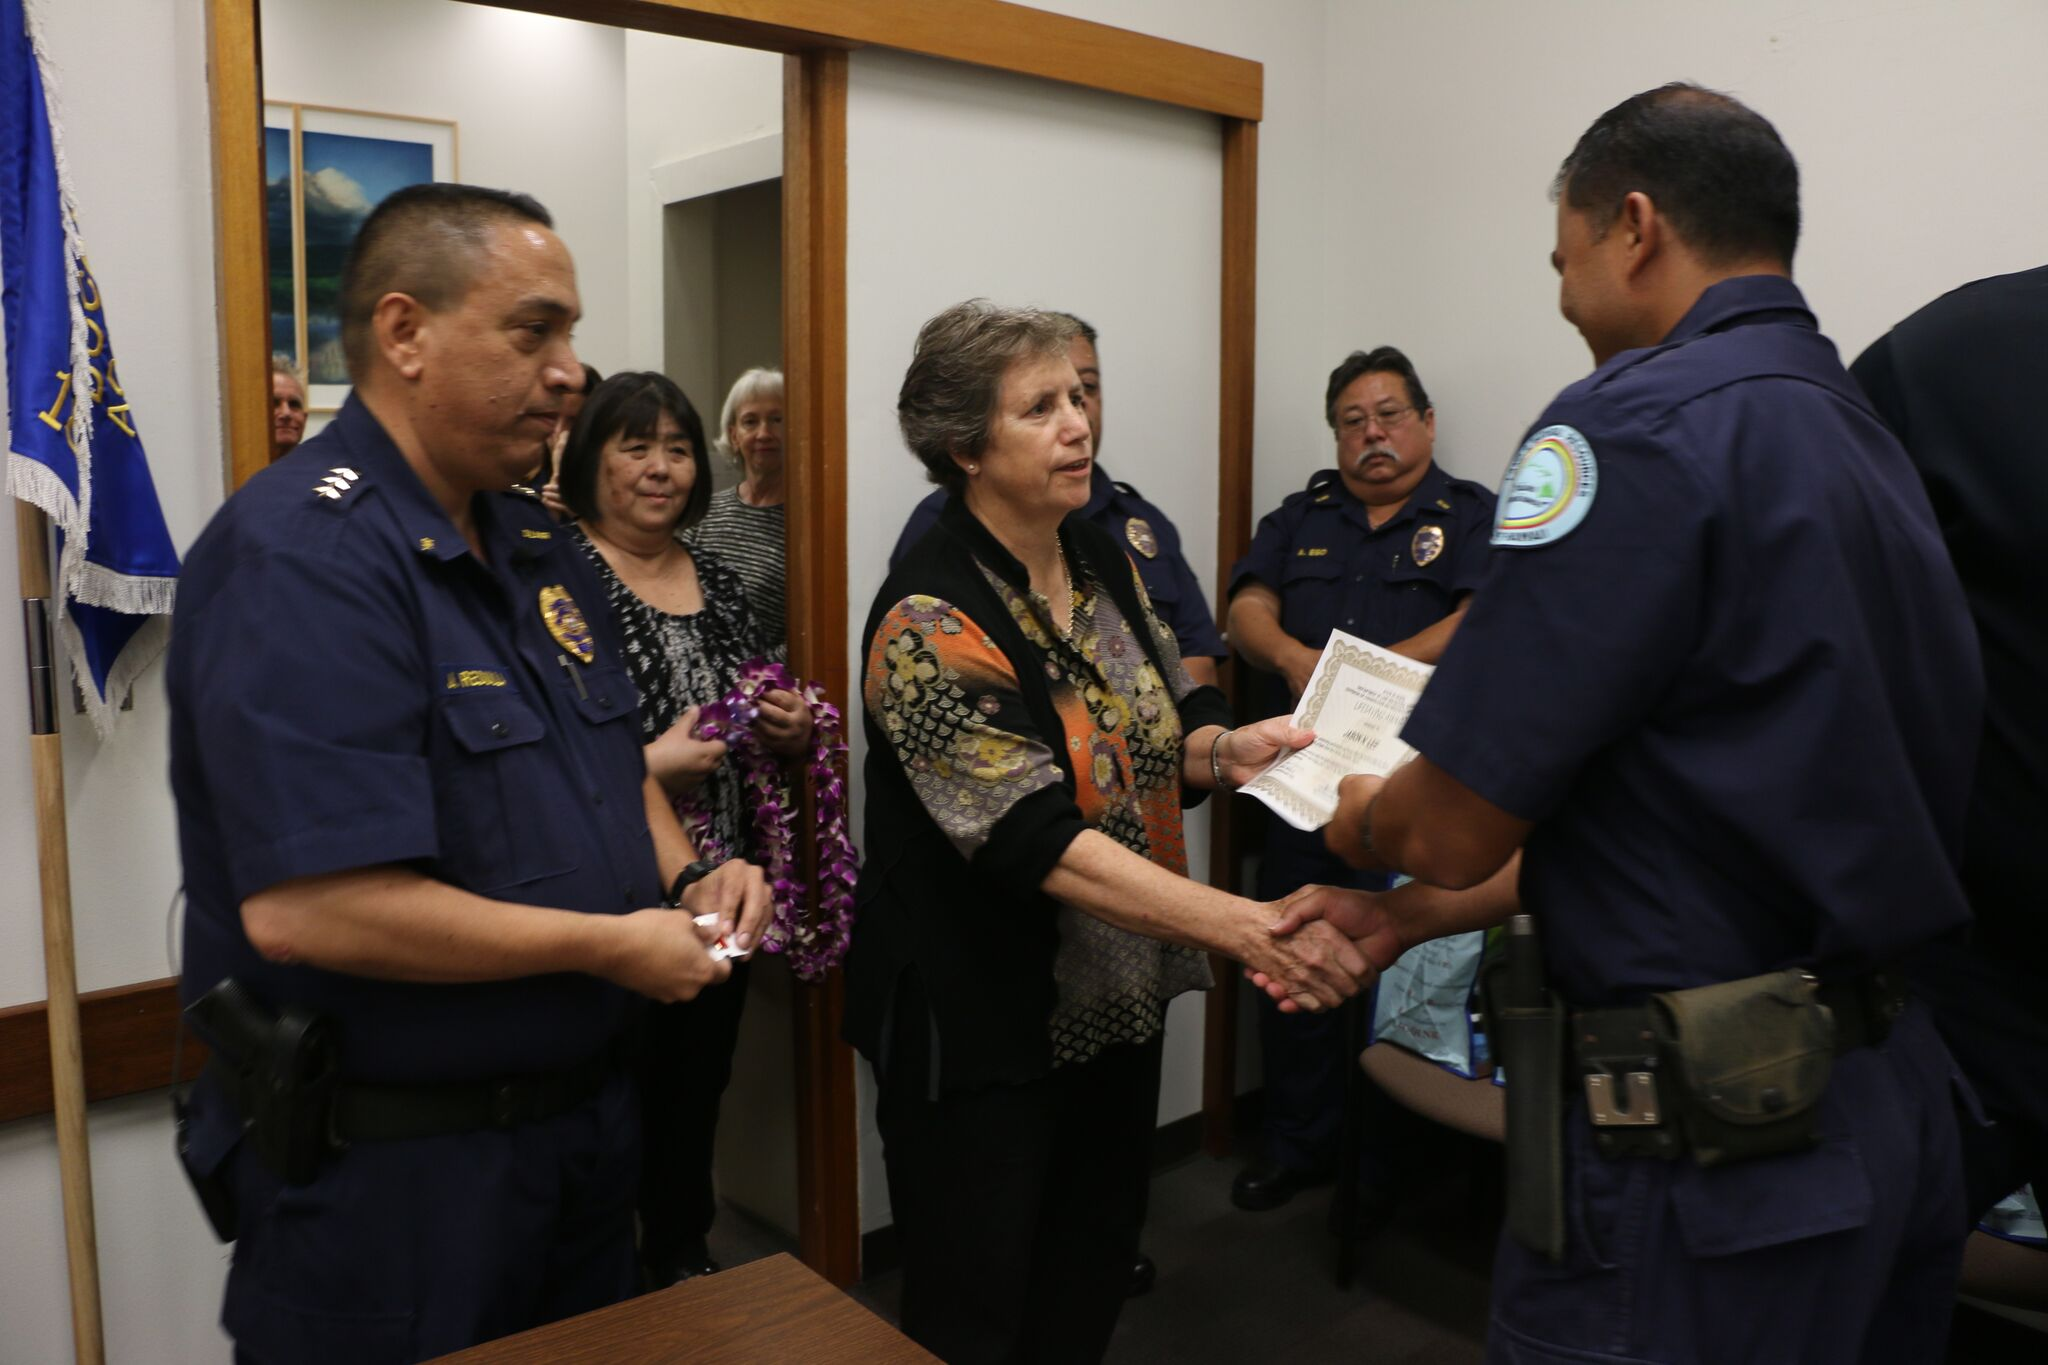 CONSERVATION OFFICERS HONORED FOR SAVING MAN'S LIFE